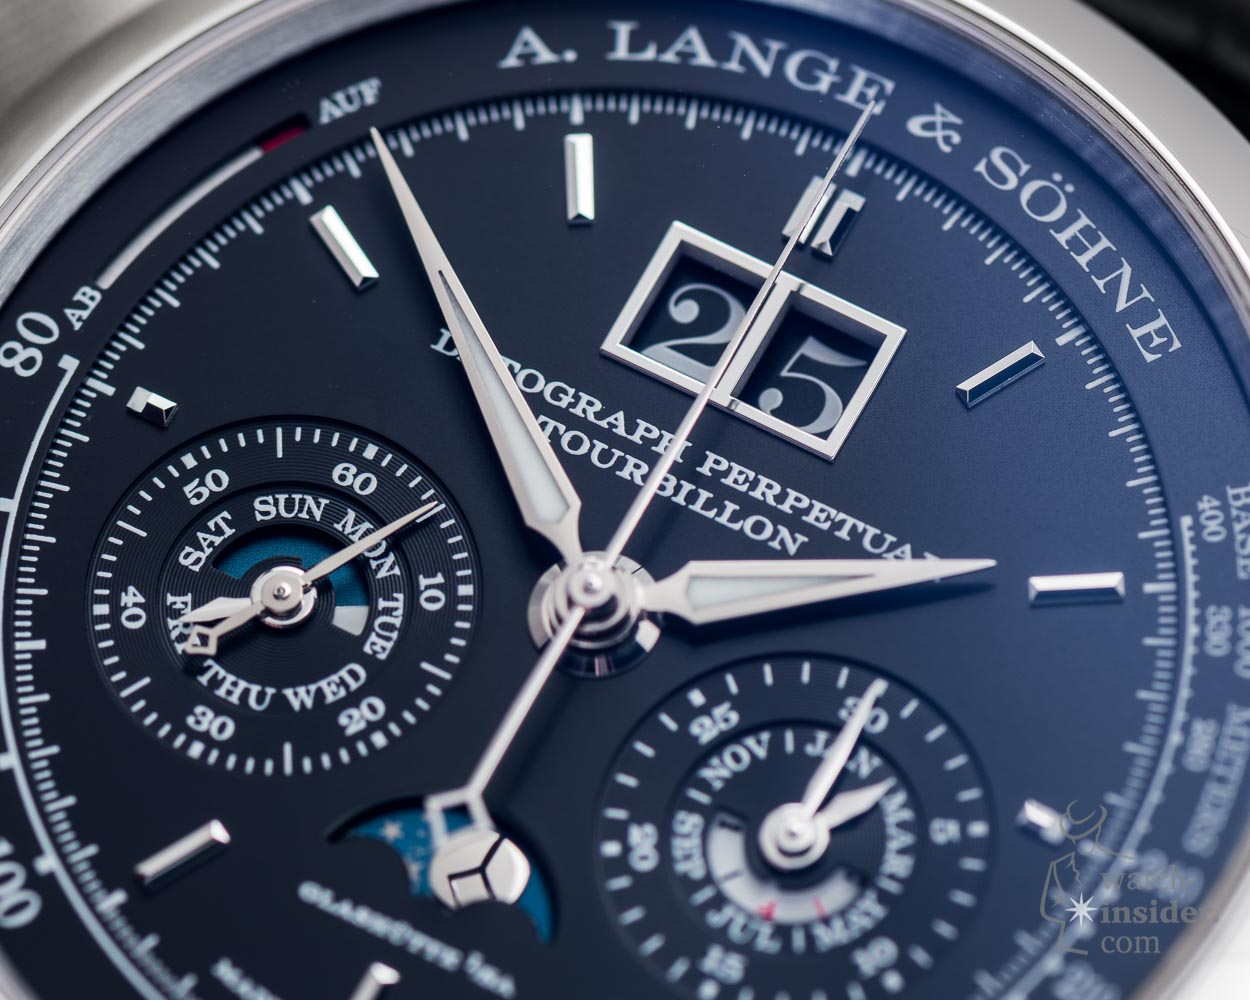 Alpha hands on the A. Lange & Söhne Datograph